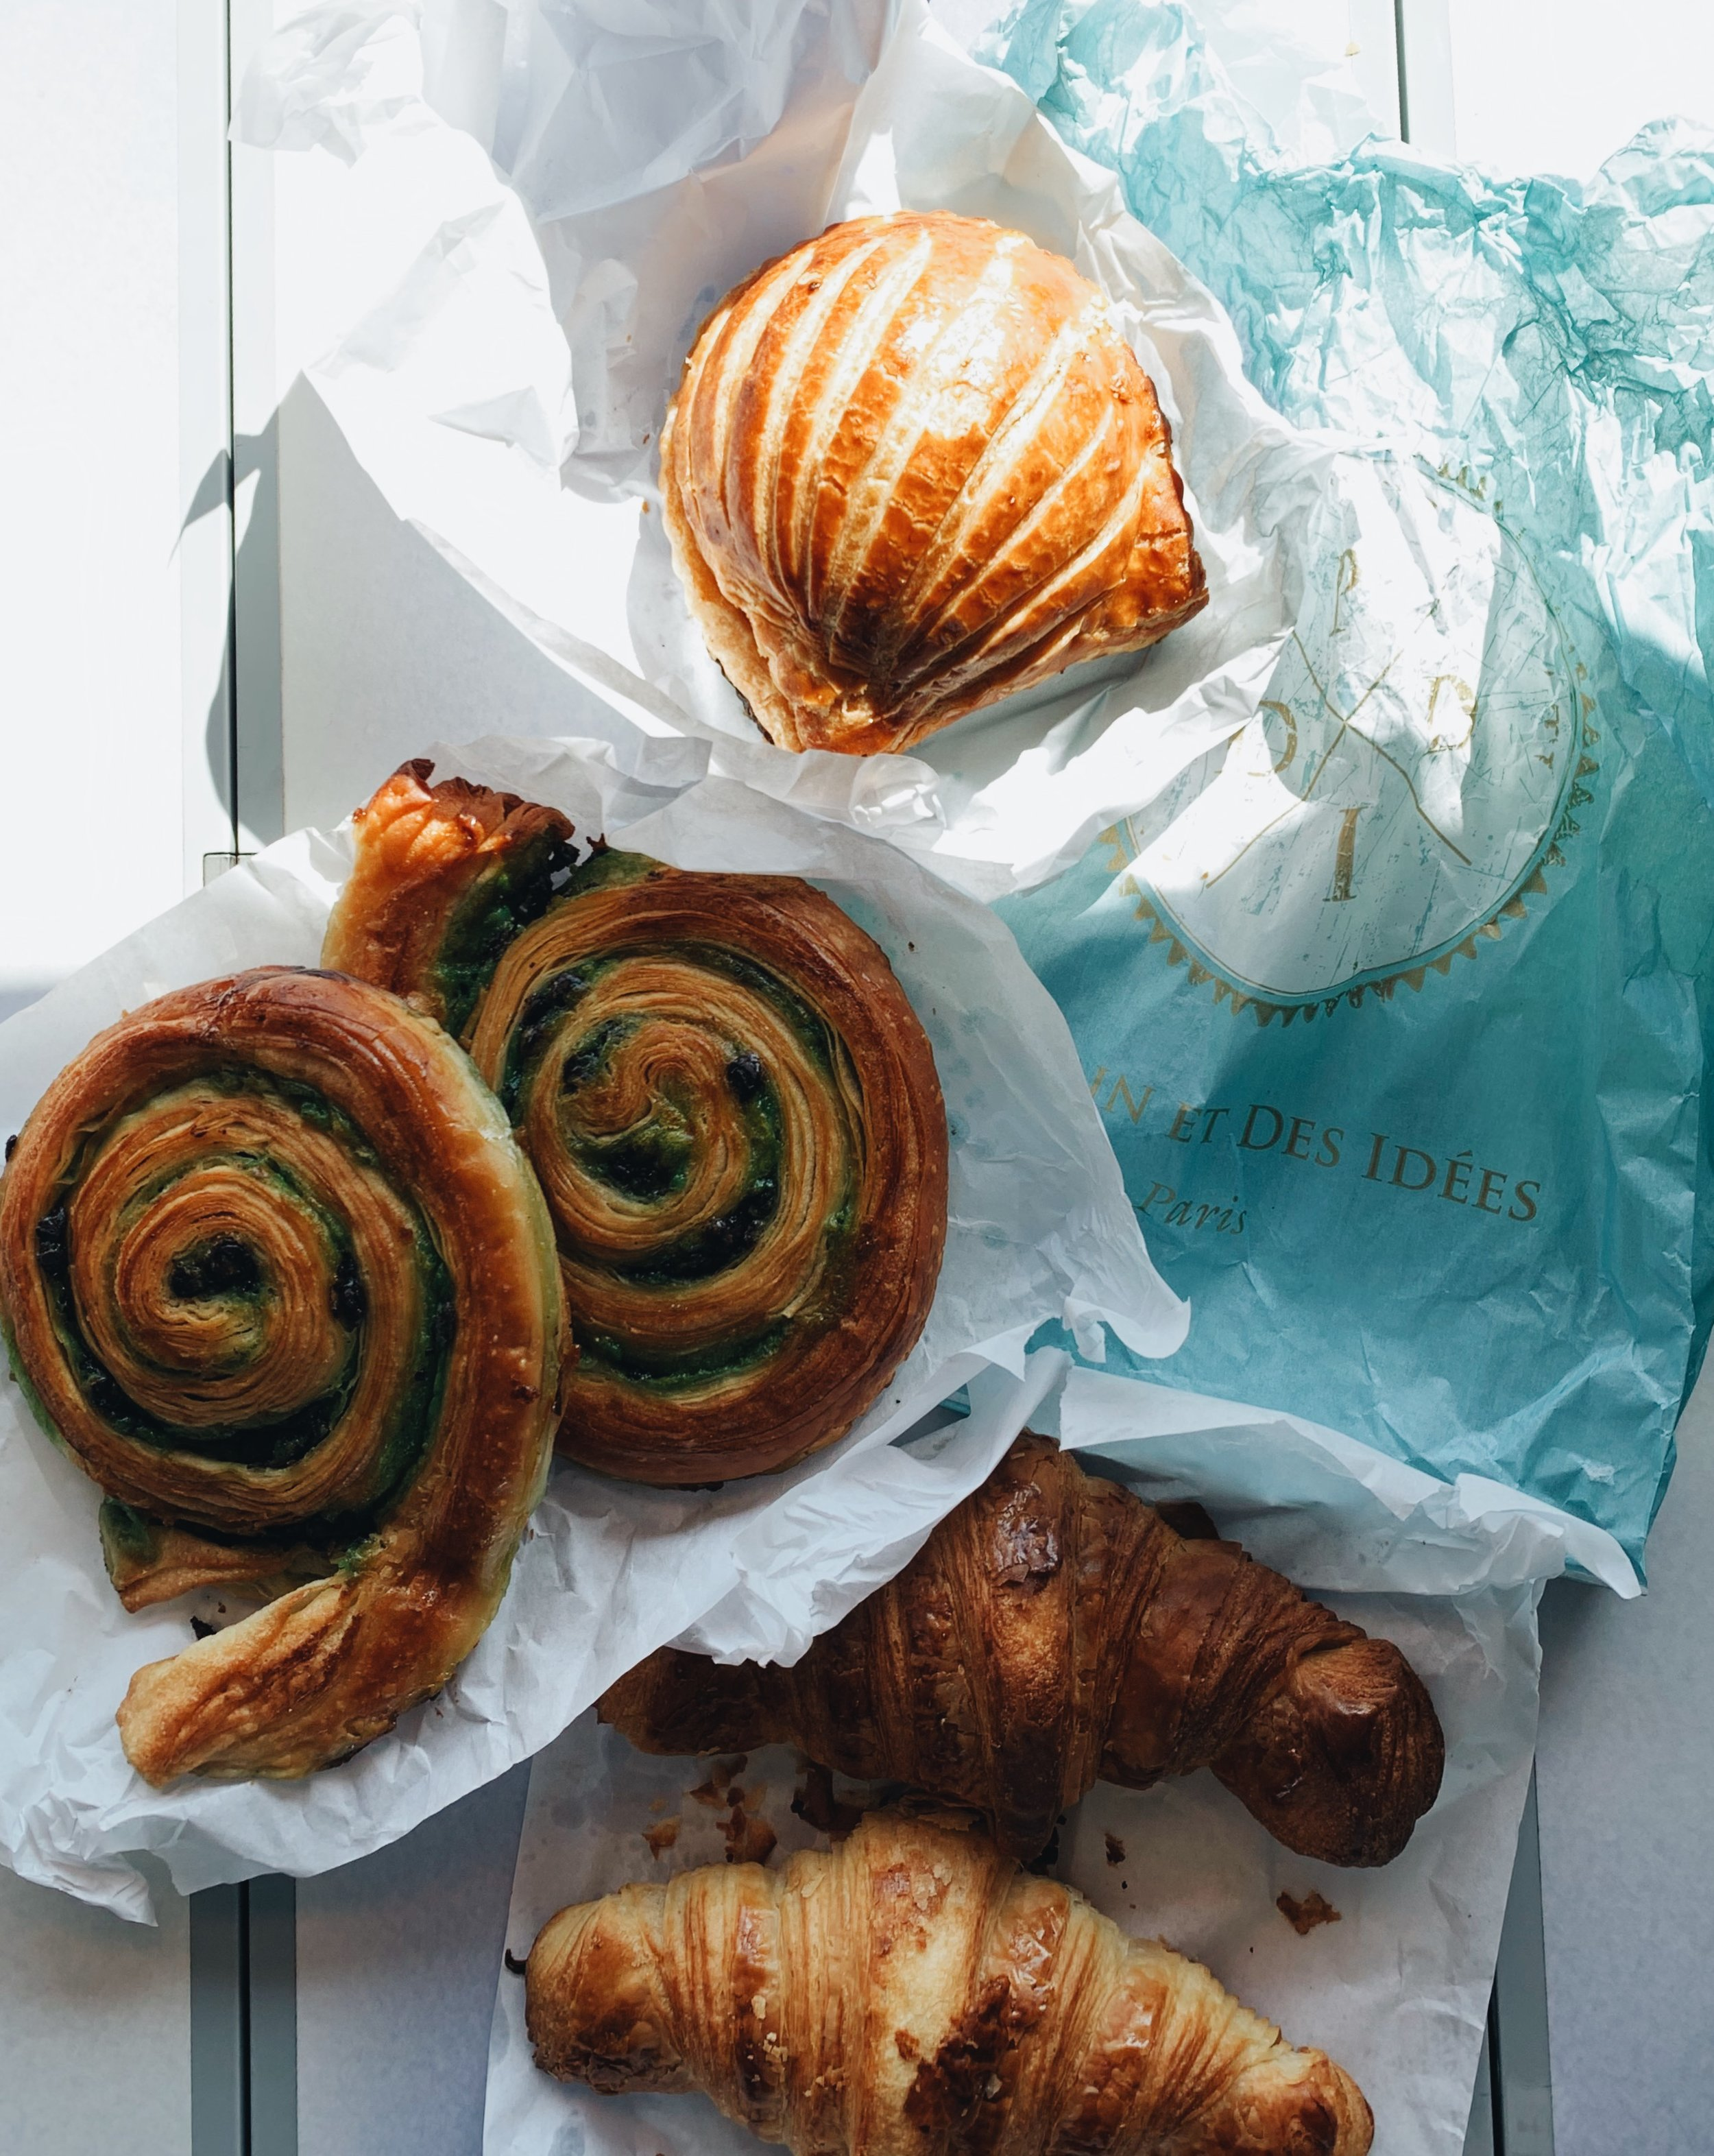 pastries for our train ride to Dijon